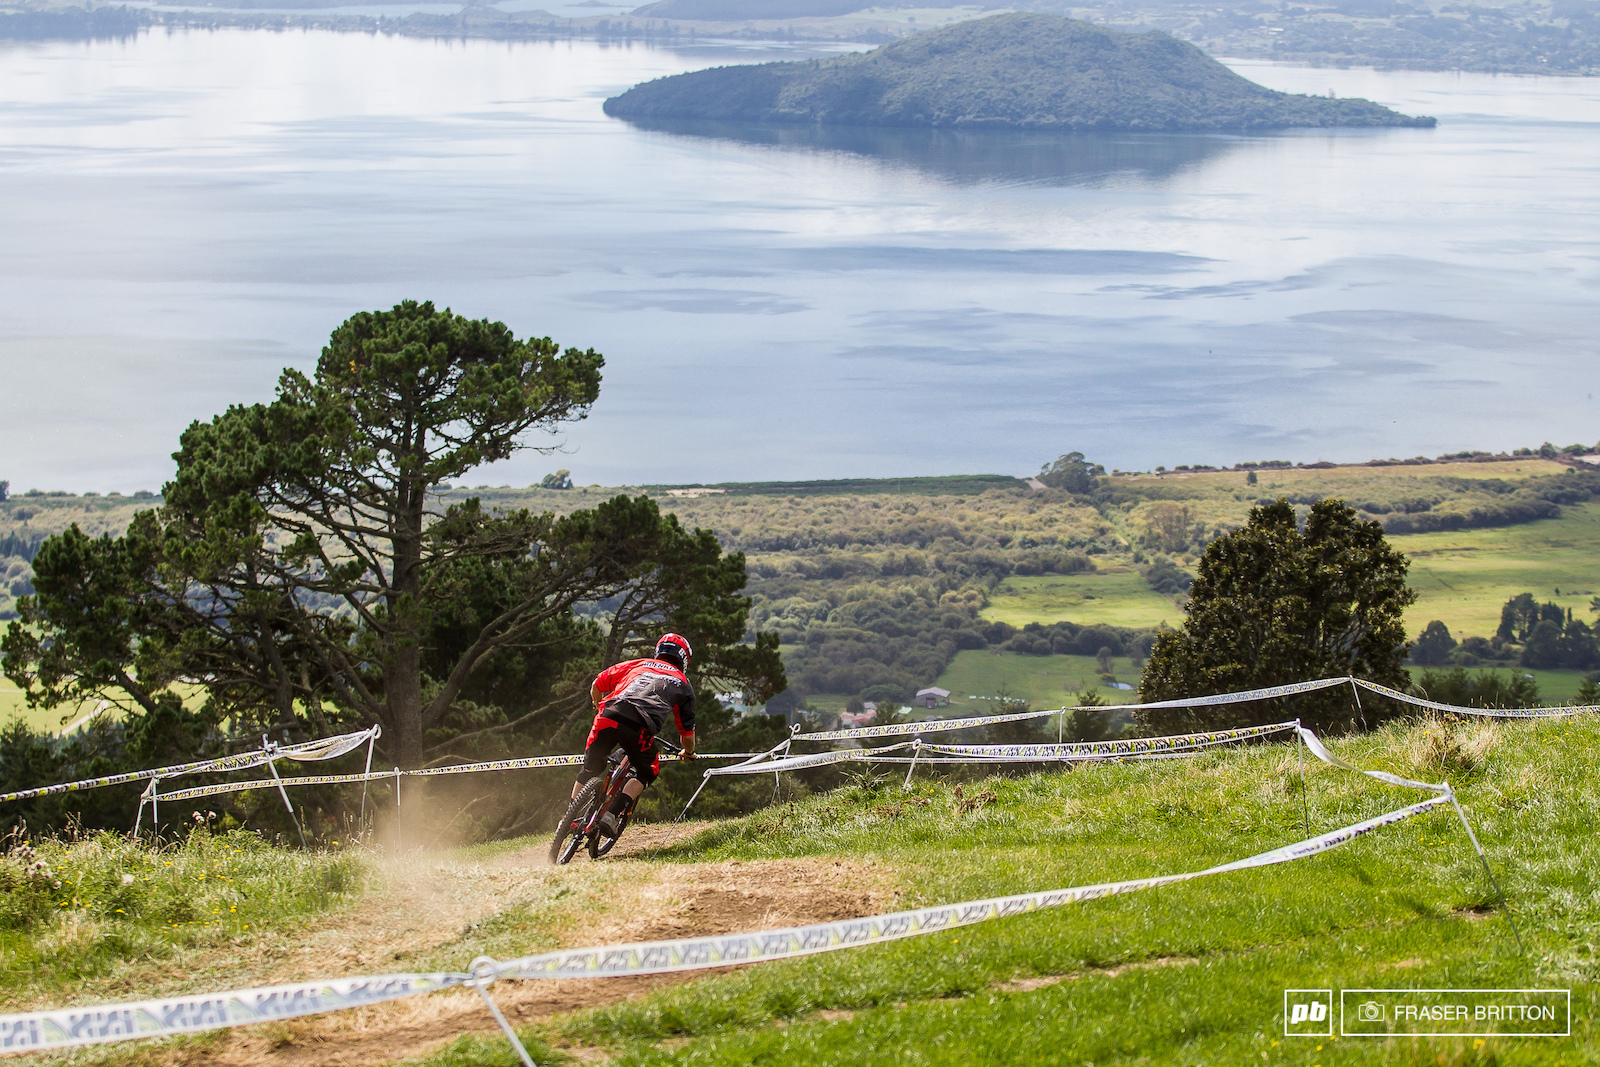 Coming into the day local Kiwi Sam Blenkinsop was among the favourites for the win. Getting loose is what Blenki does and he was hanging it out all over the place. With his Grandmother and Mom in attendance he was out to show what he s got. Here he drops into the top of the track with lake Rotorua in the distance.